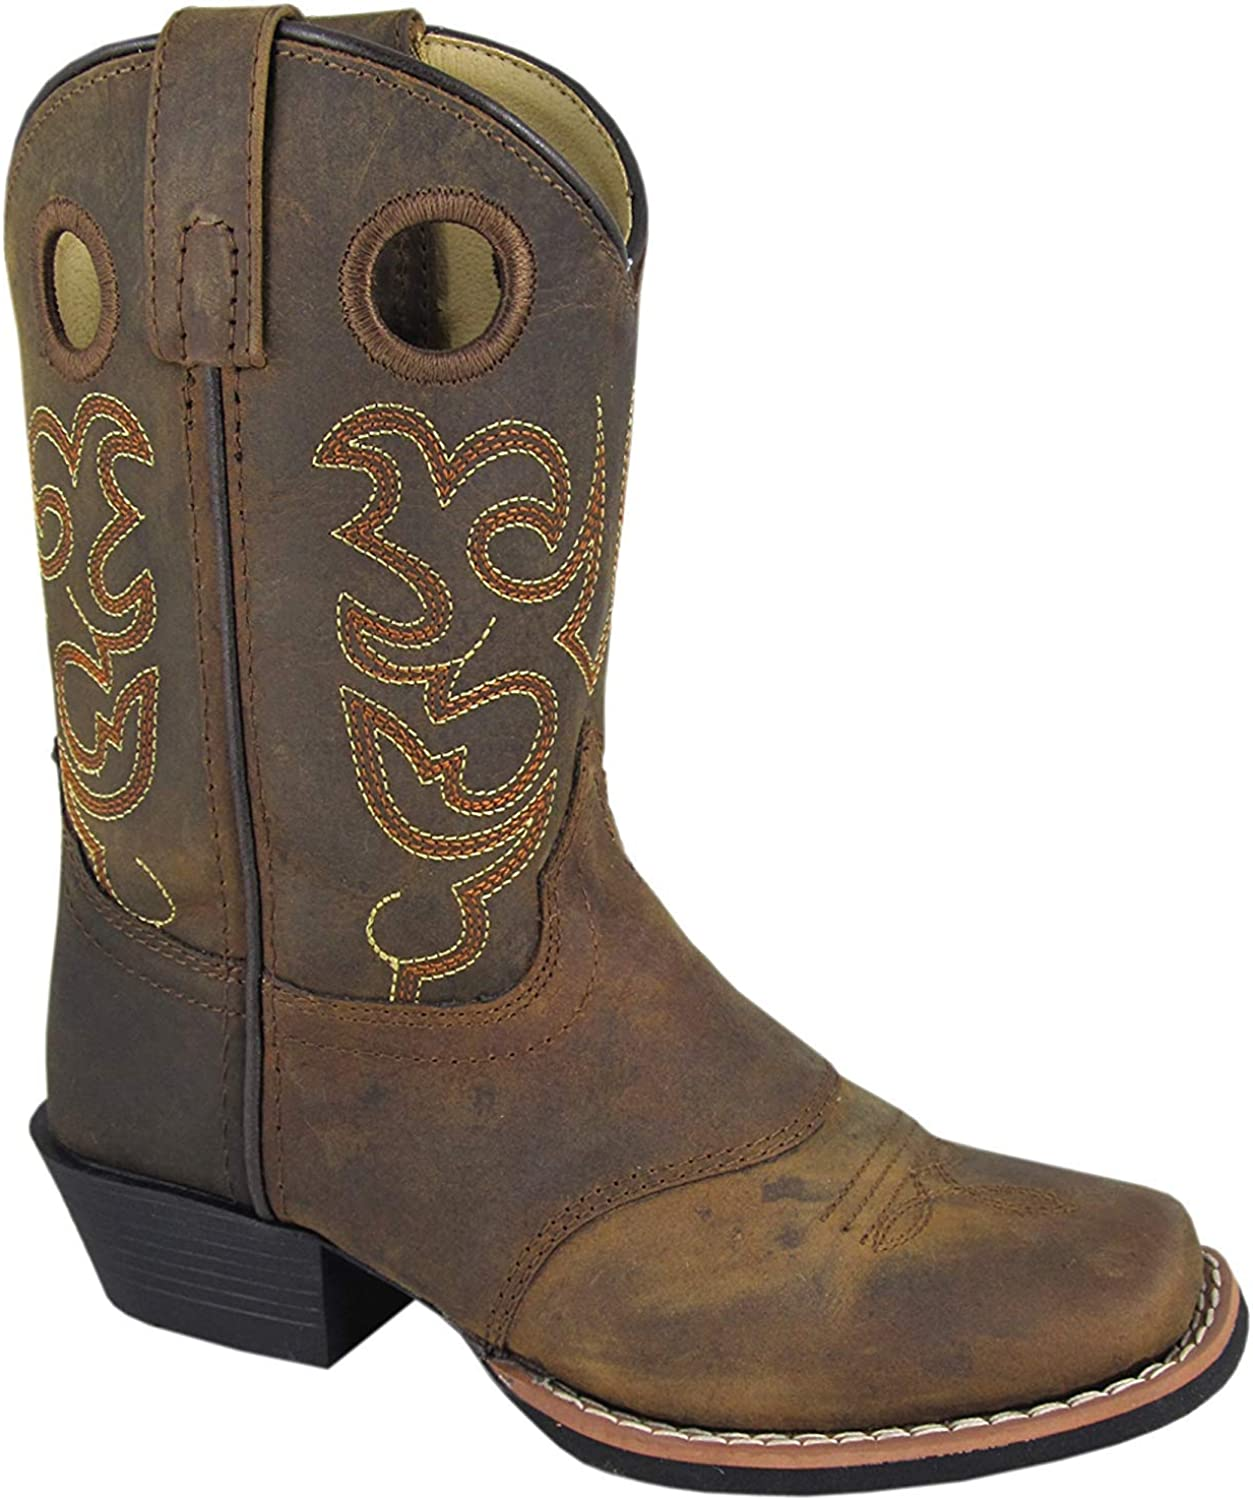 Smoky Mountain Childs Western Sedona Saddle SQ Toe Boots Brown Distress//True Timber Camo